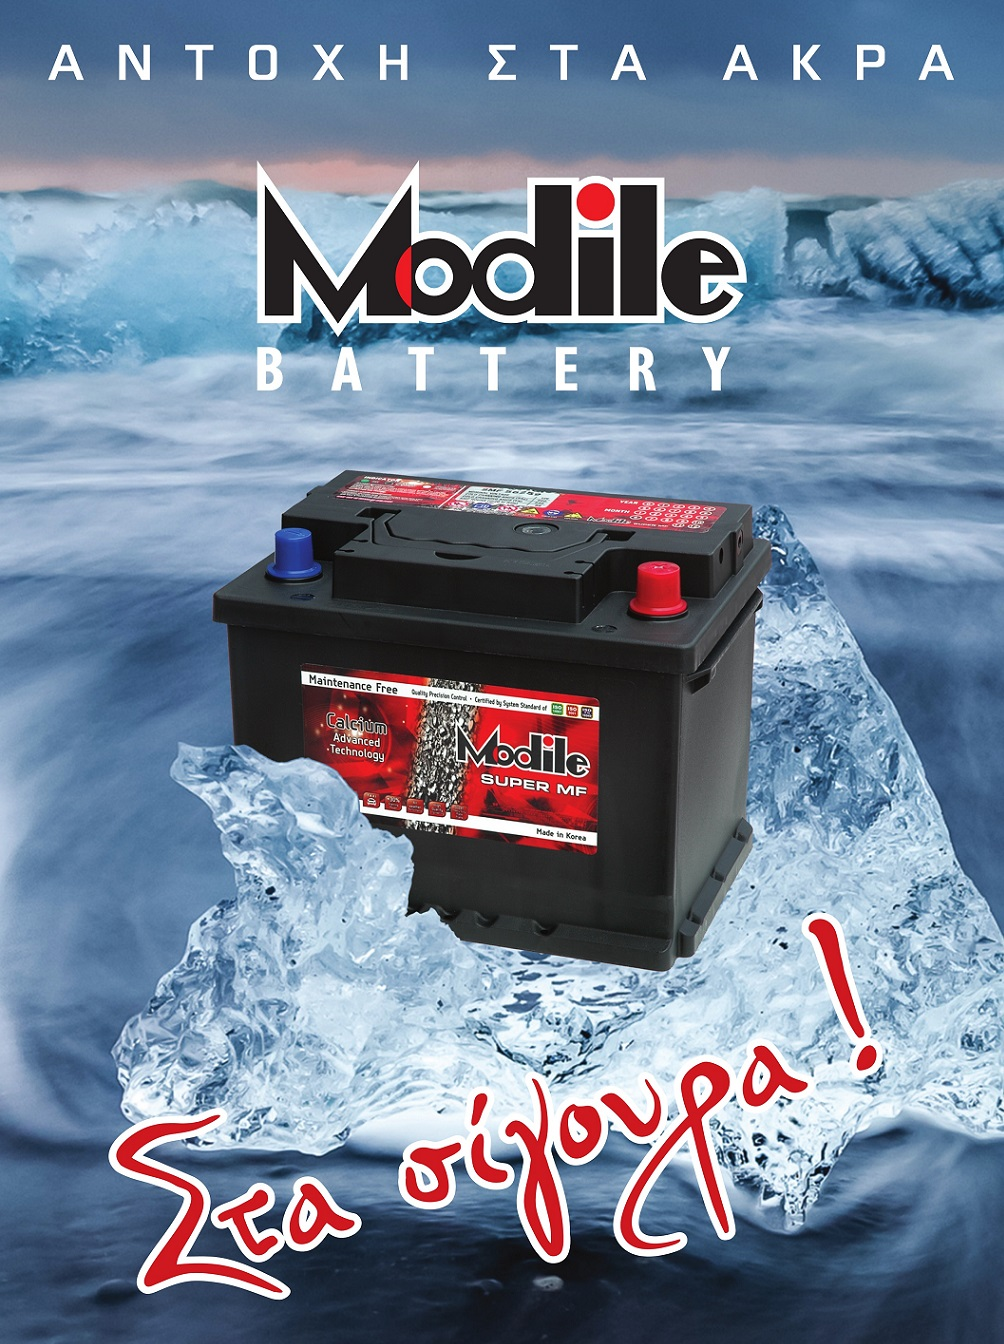 Modile battery poster 002